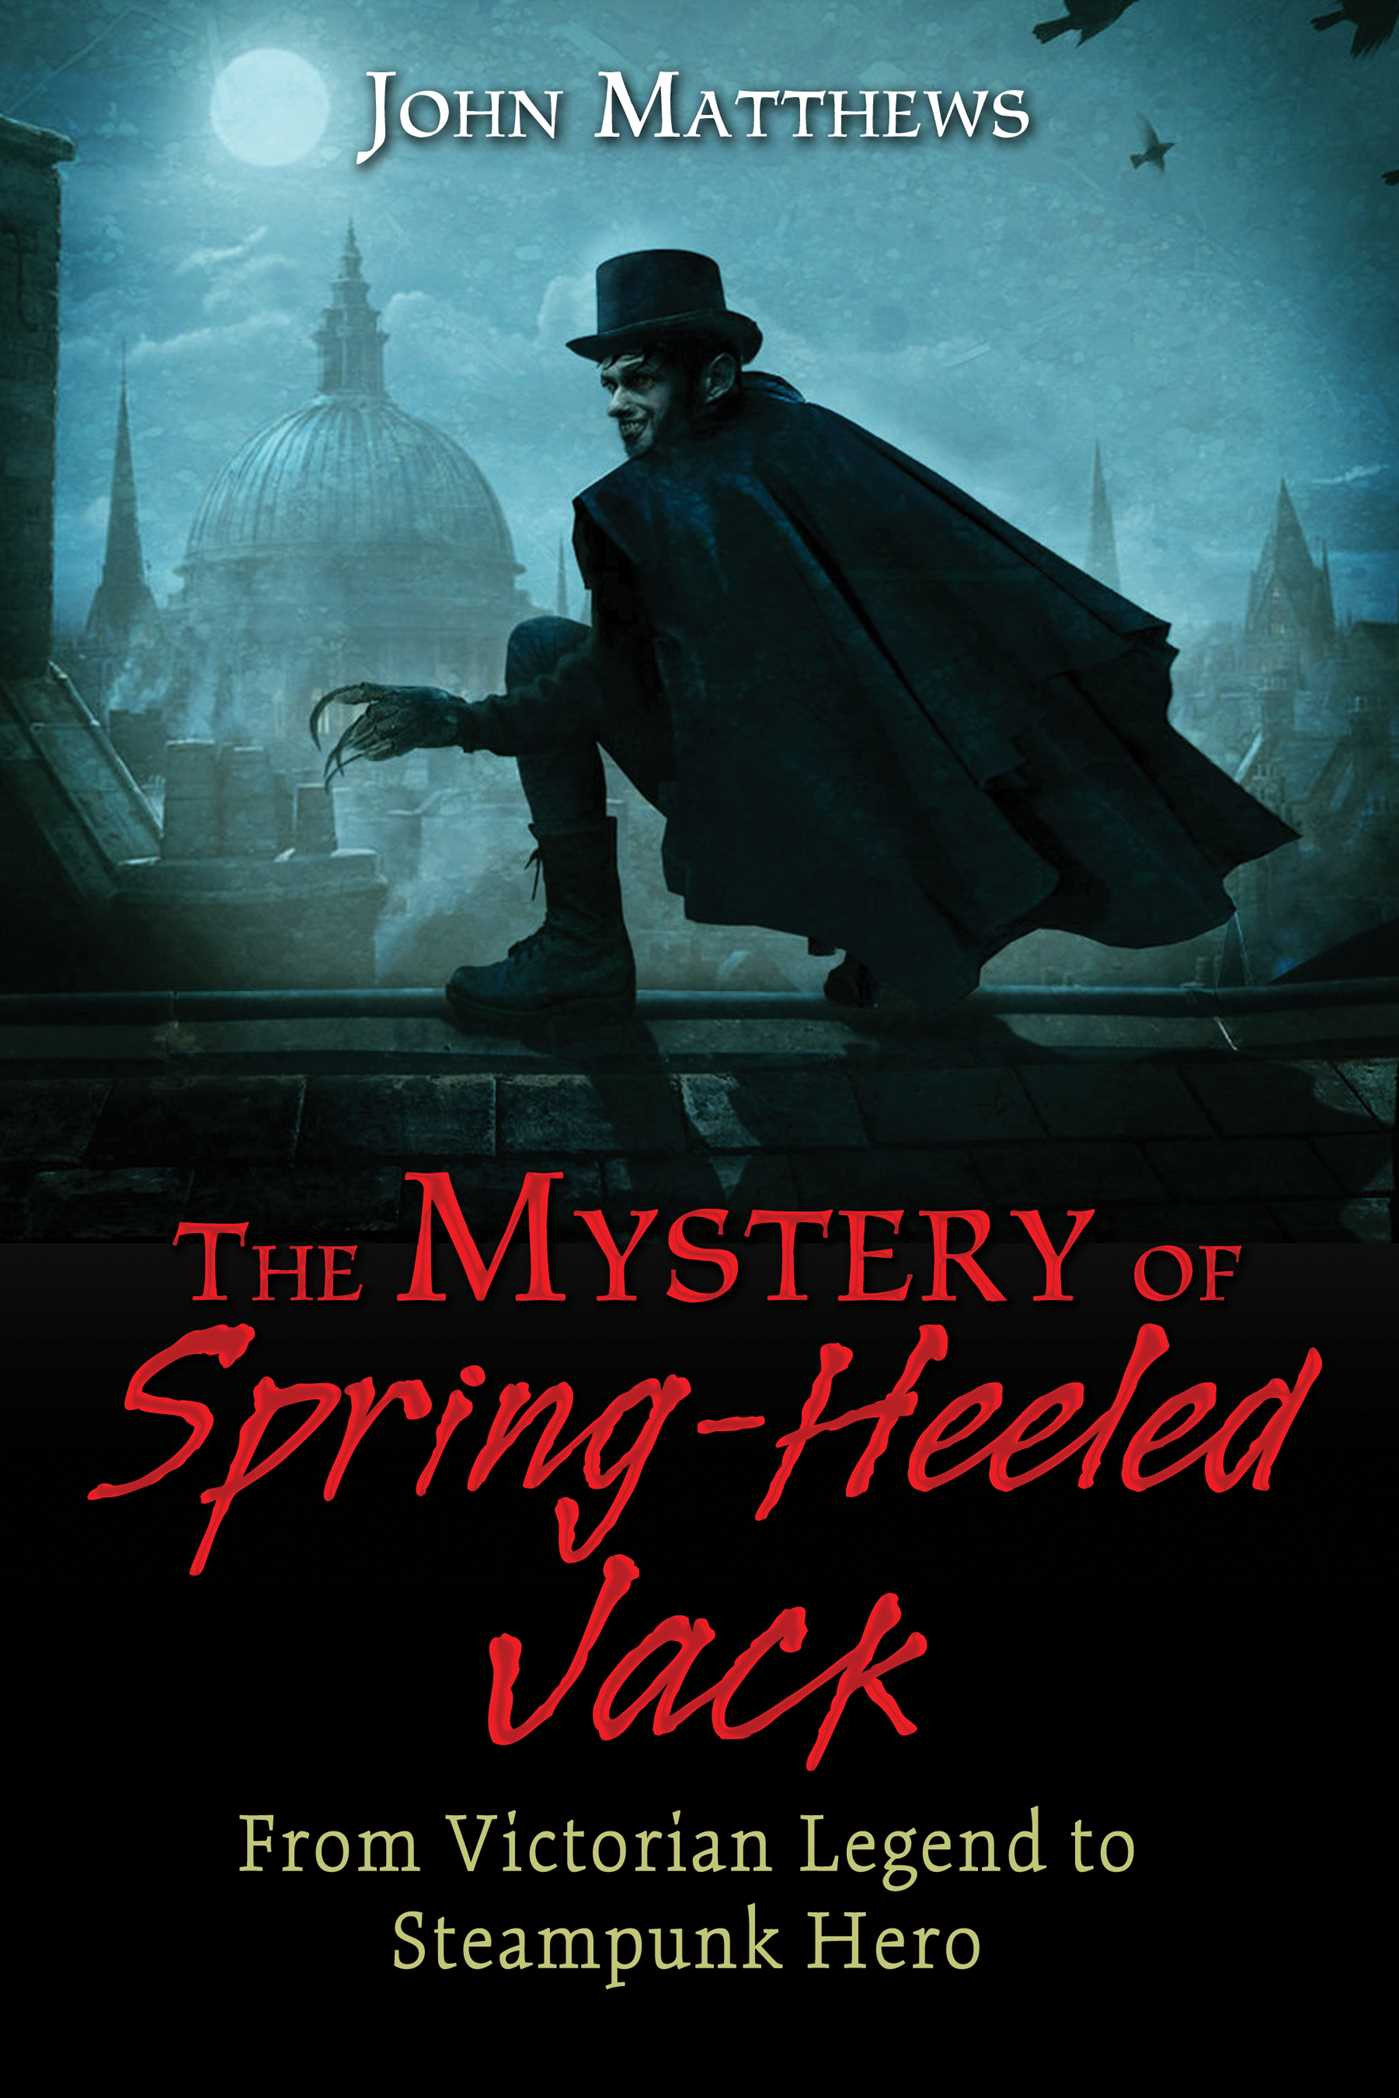 Image result for The Mystery of Spring-heeled Jack: From Victorian Legend to Steampunk Hero